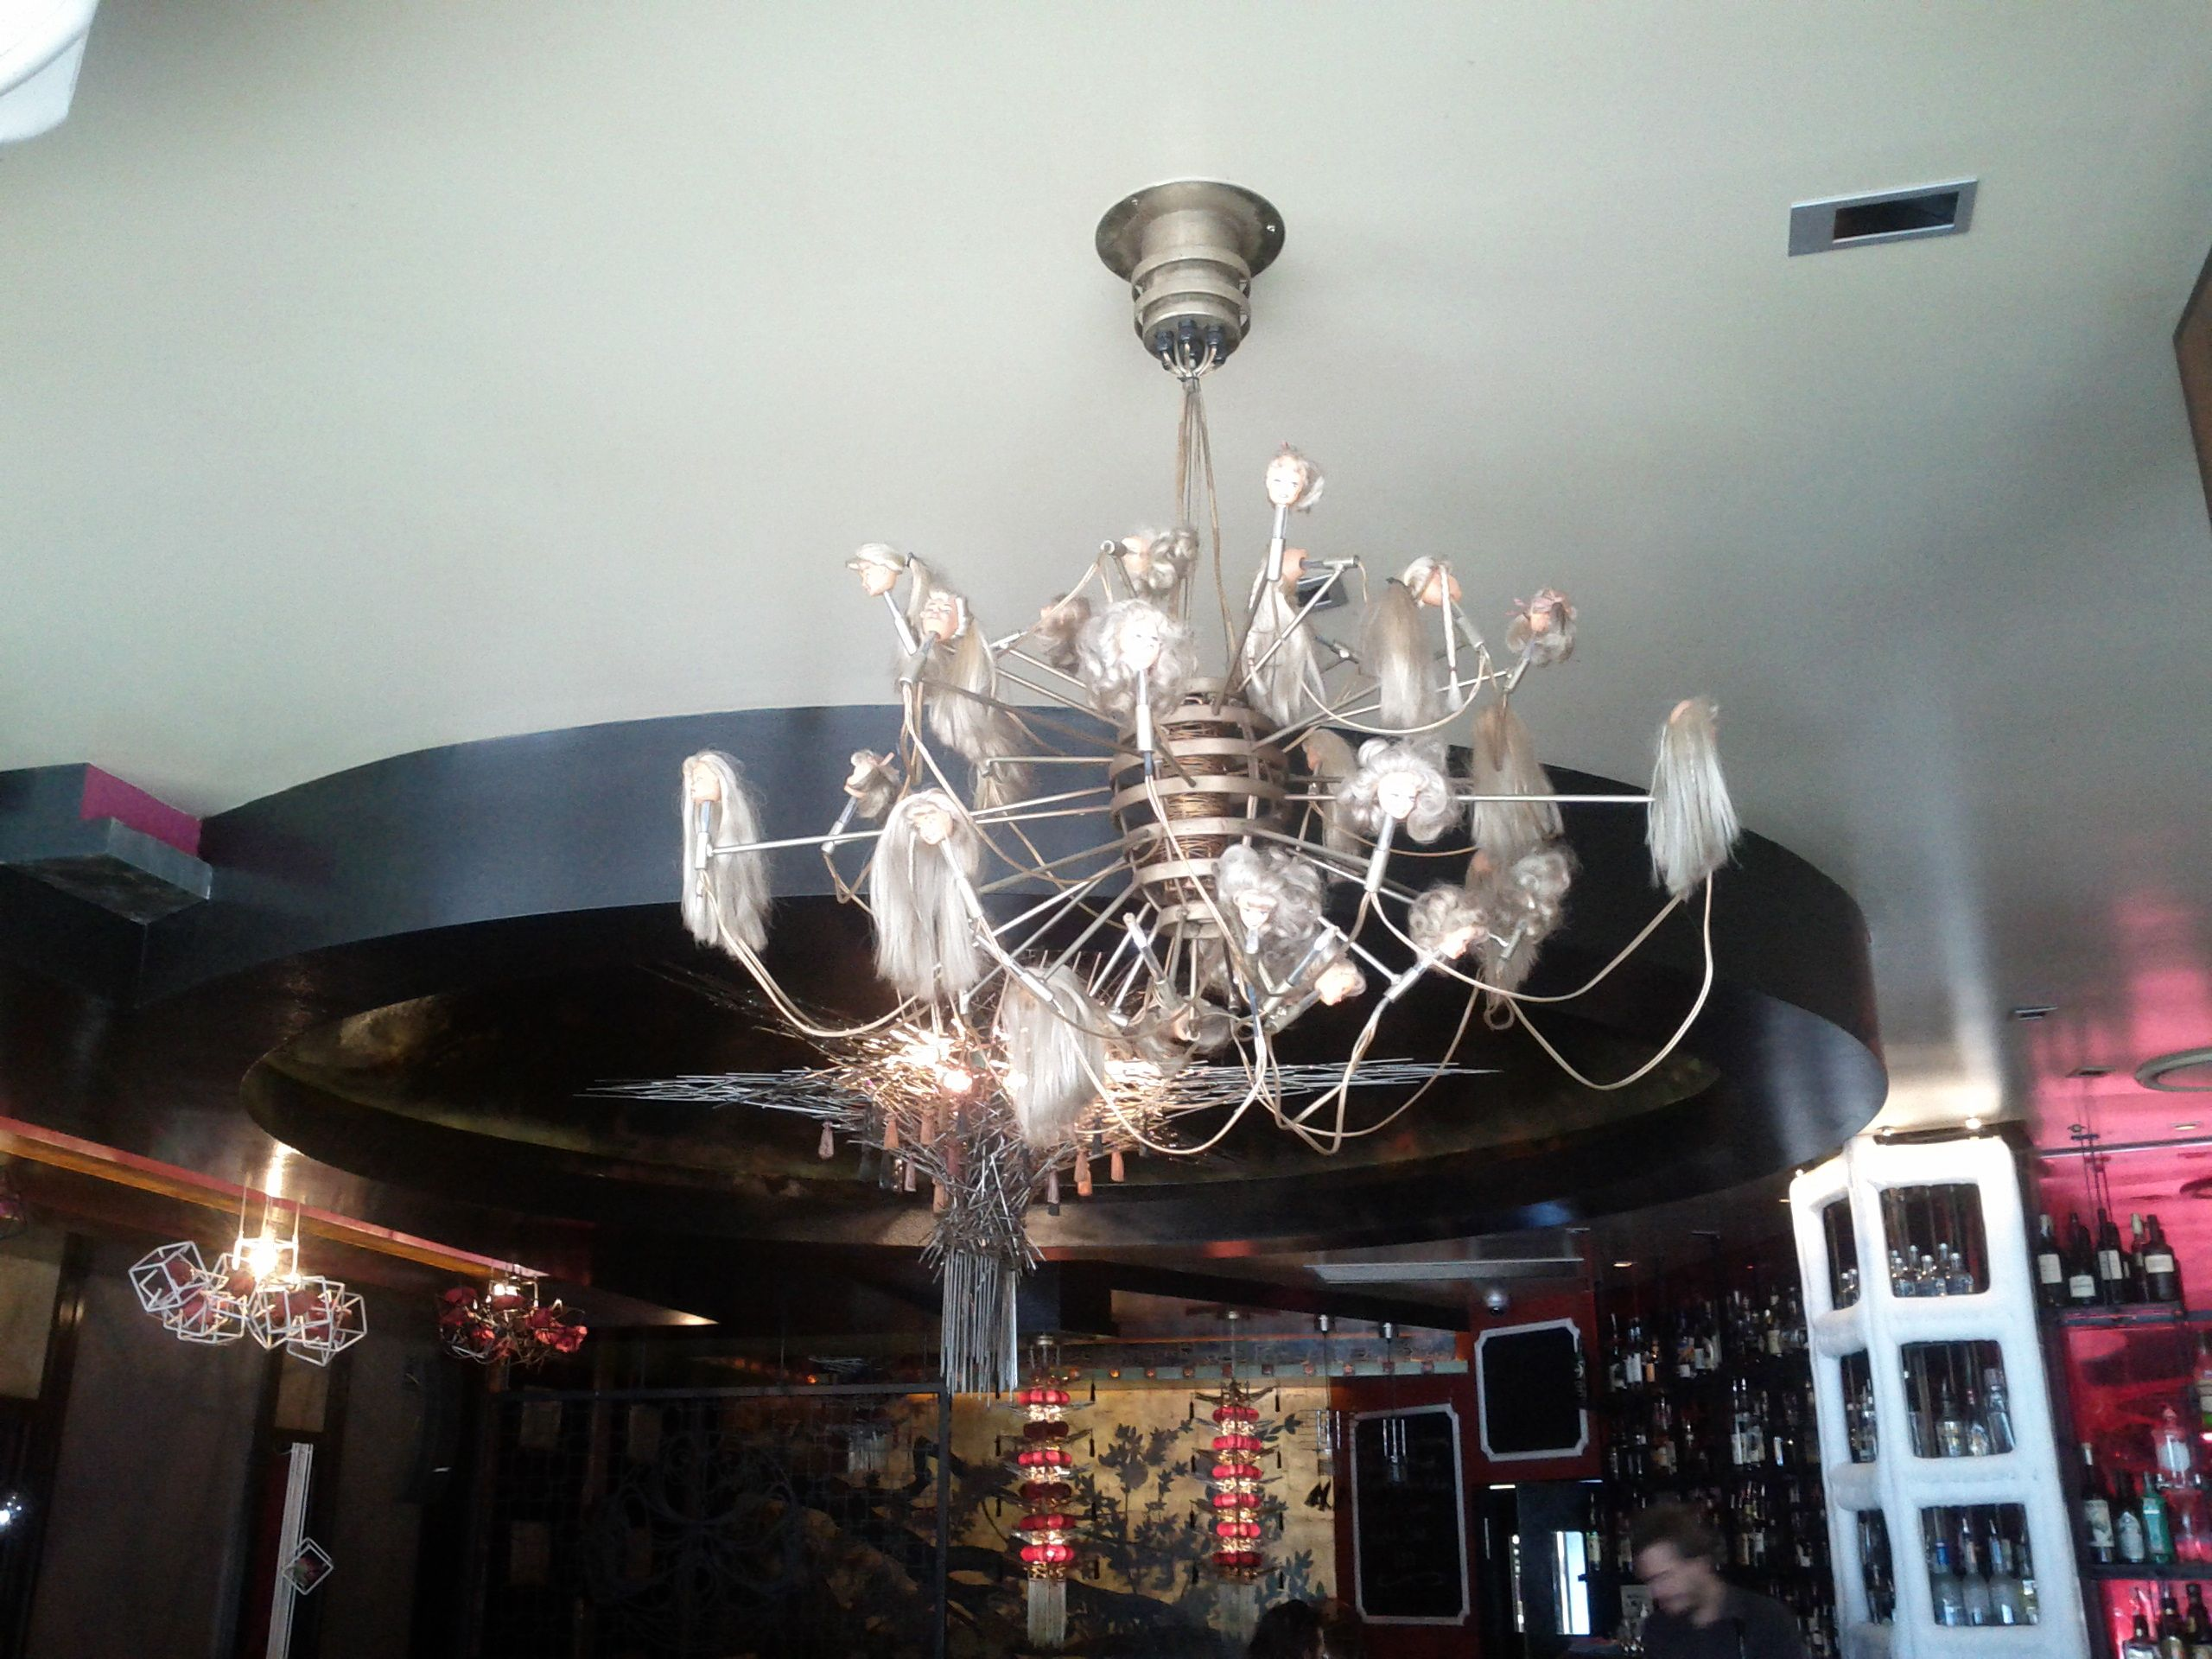 A doll head chandelier spotted in a bar in west end brisbane a doll head chandelier spotted in a bar in west end brisbane arubaitofo Gallery